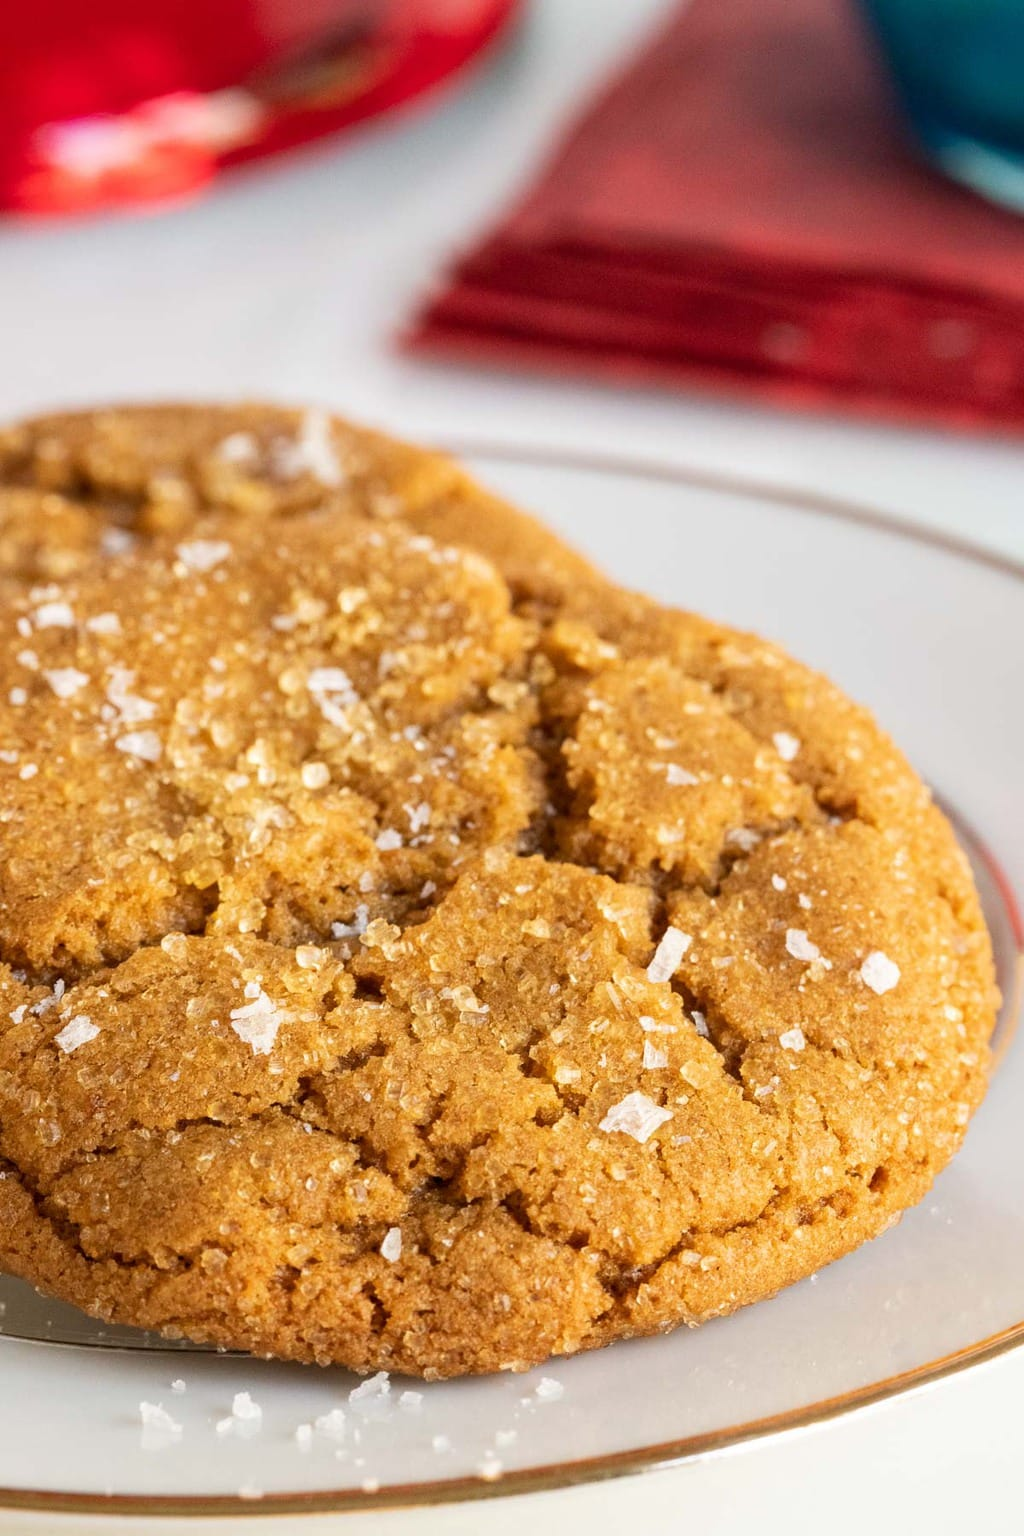 Vertical extreme closeup photo of Crinkly Crackly Butterscotch Cookies on a white serving plate with a gold edge.